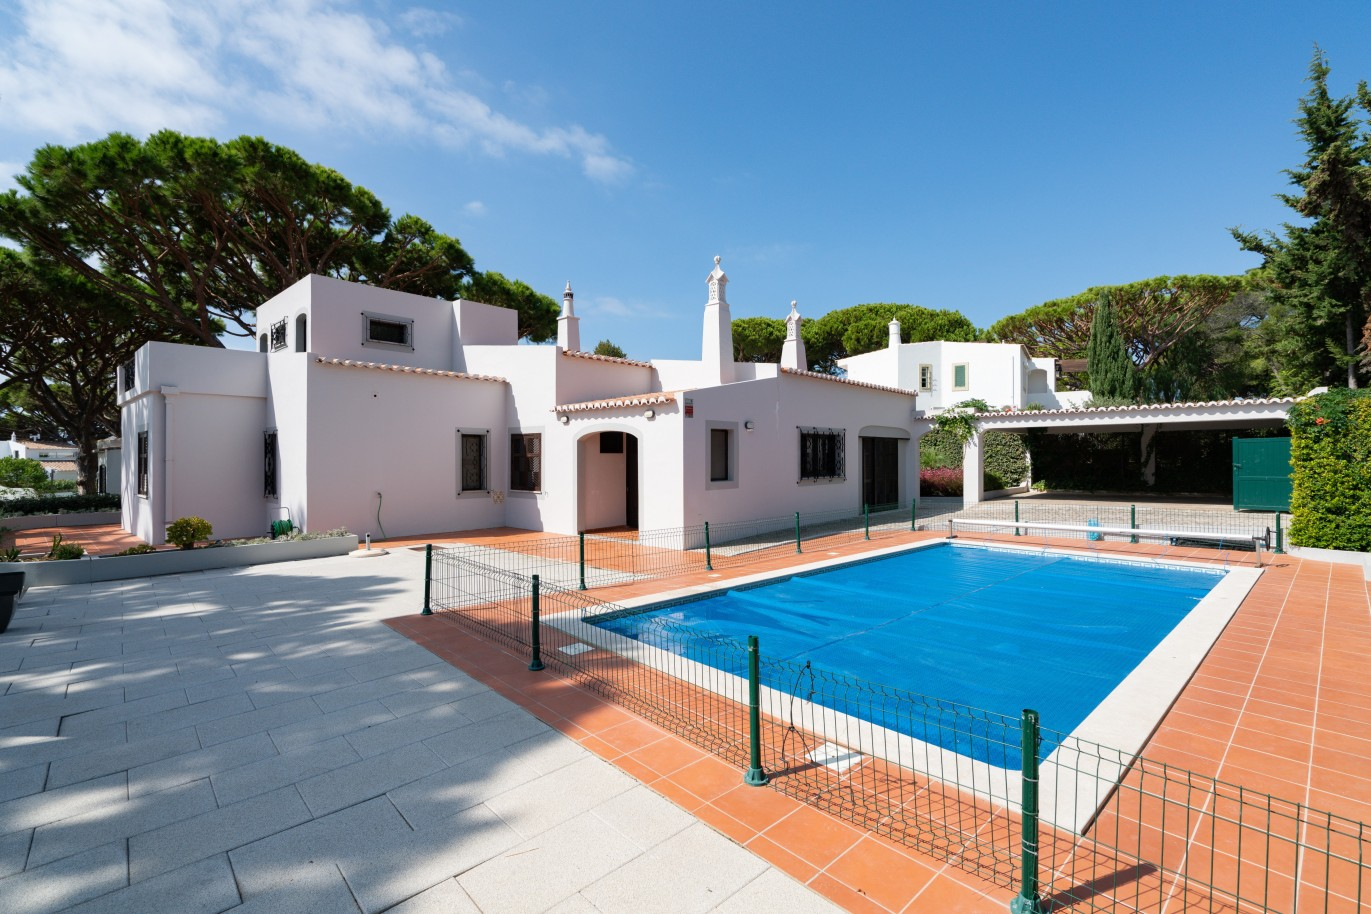 traditional-4-bedroom-villa-with-swimming-pool-vale-do-lobo-algarve